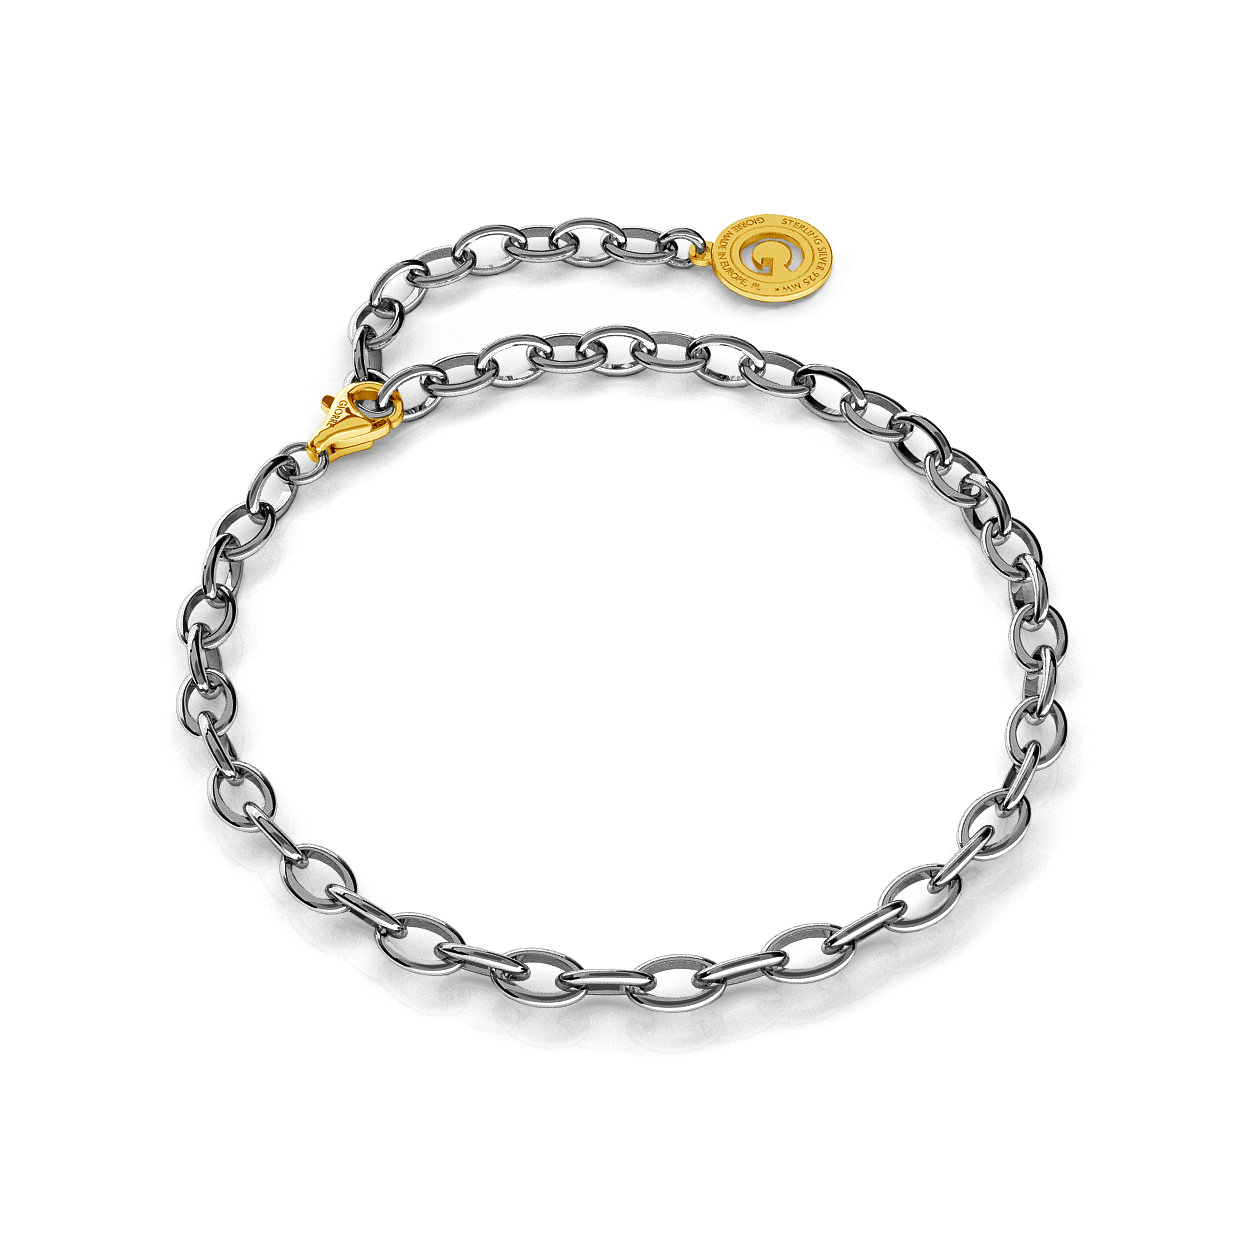 STERLING SILVER BRACELET 16-24 CM BLACK RHODIUM, YELLOW GOLD CLASP, LINK 6X4 MM